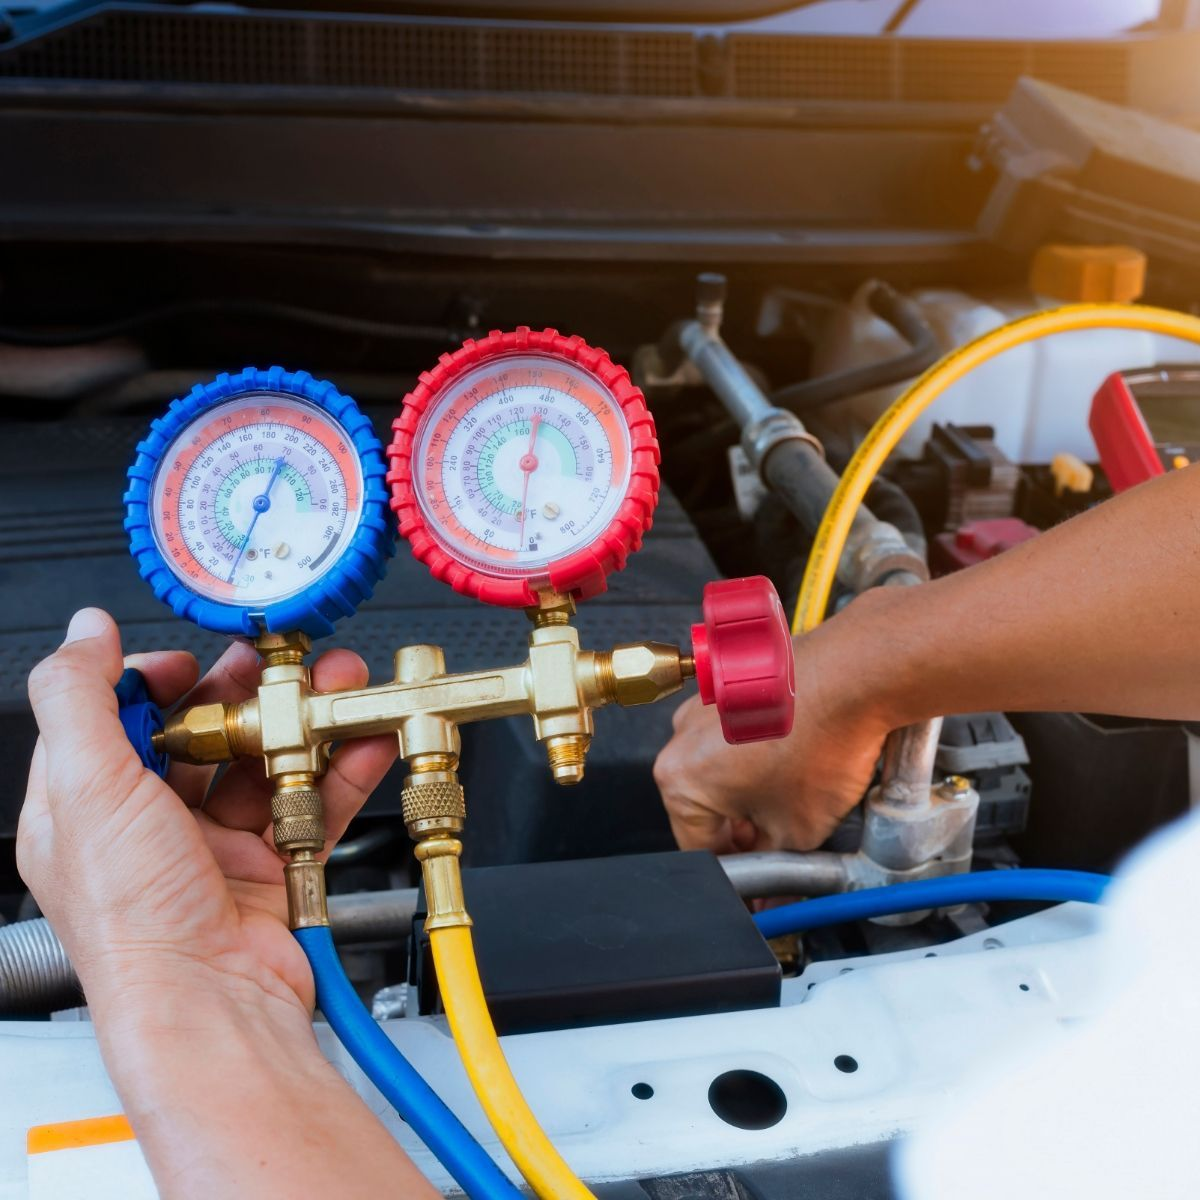 Equipment Manufacturers Recommend Having Your Cooling System